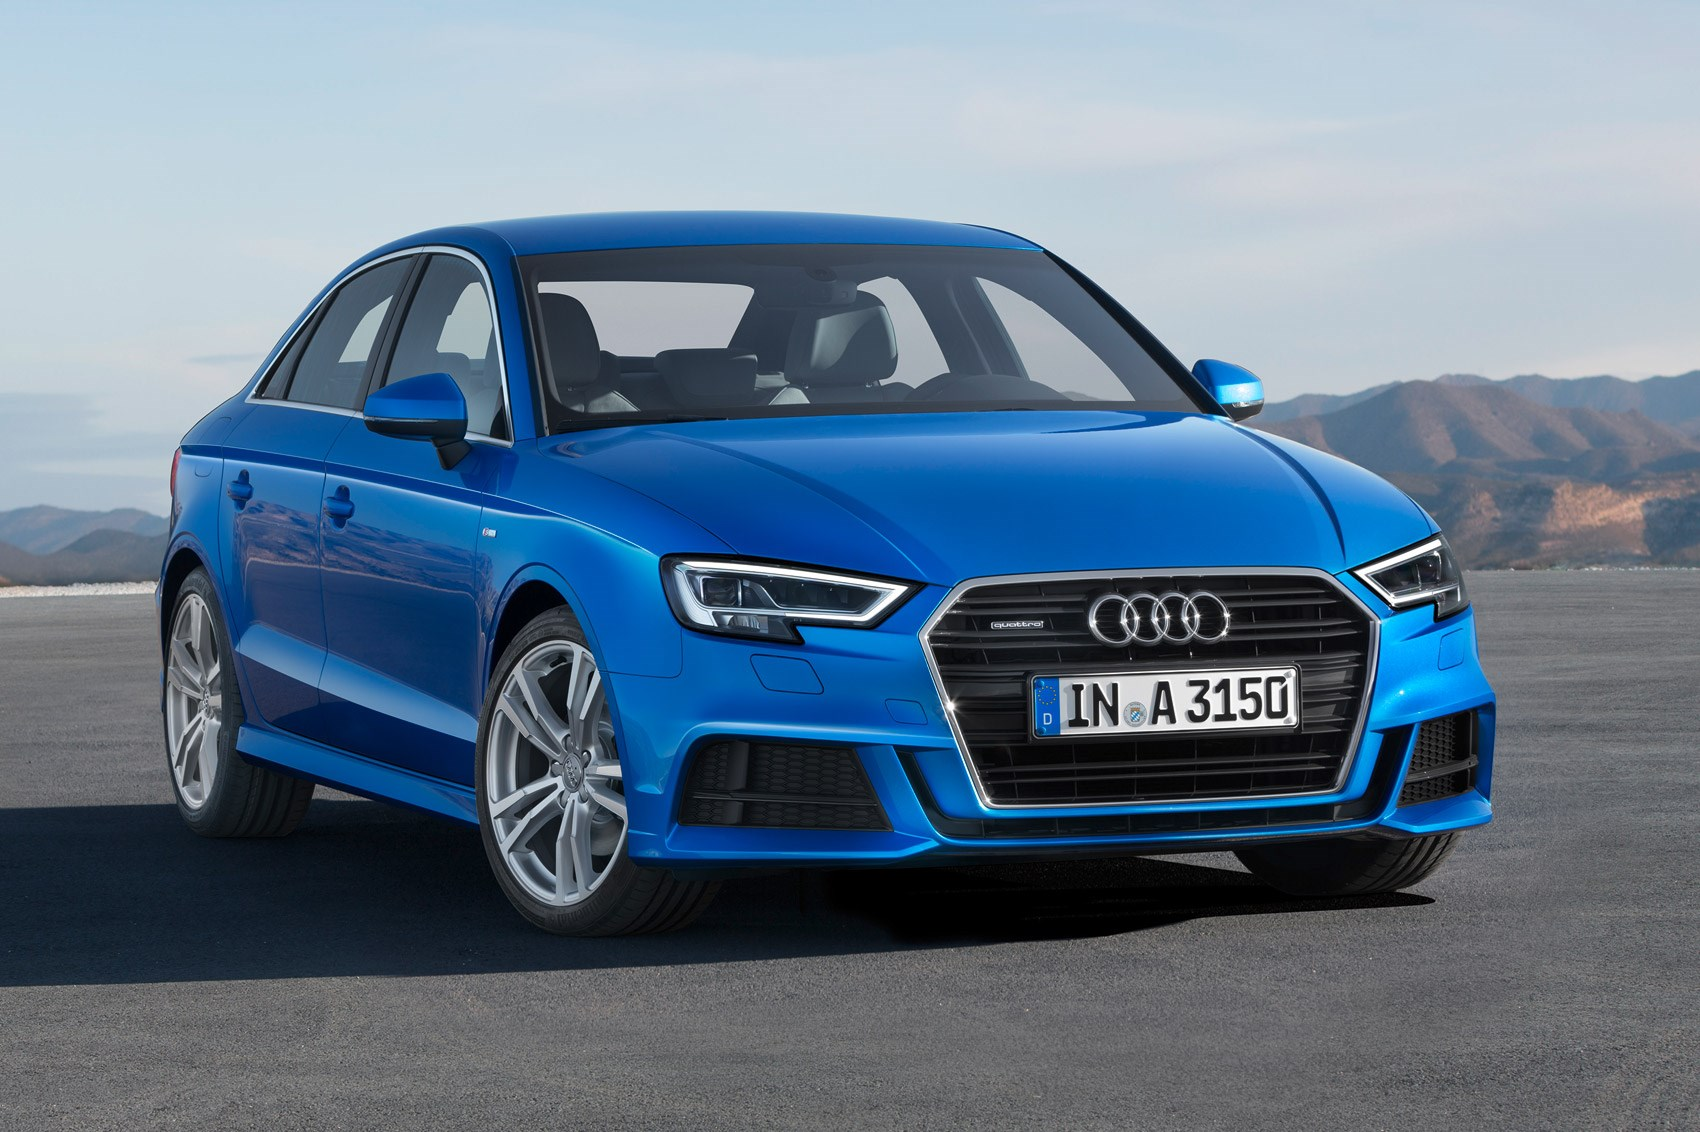 facelifted audi a3 revealed: new tech, kit and enginescar magazine